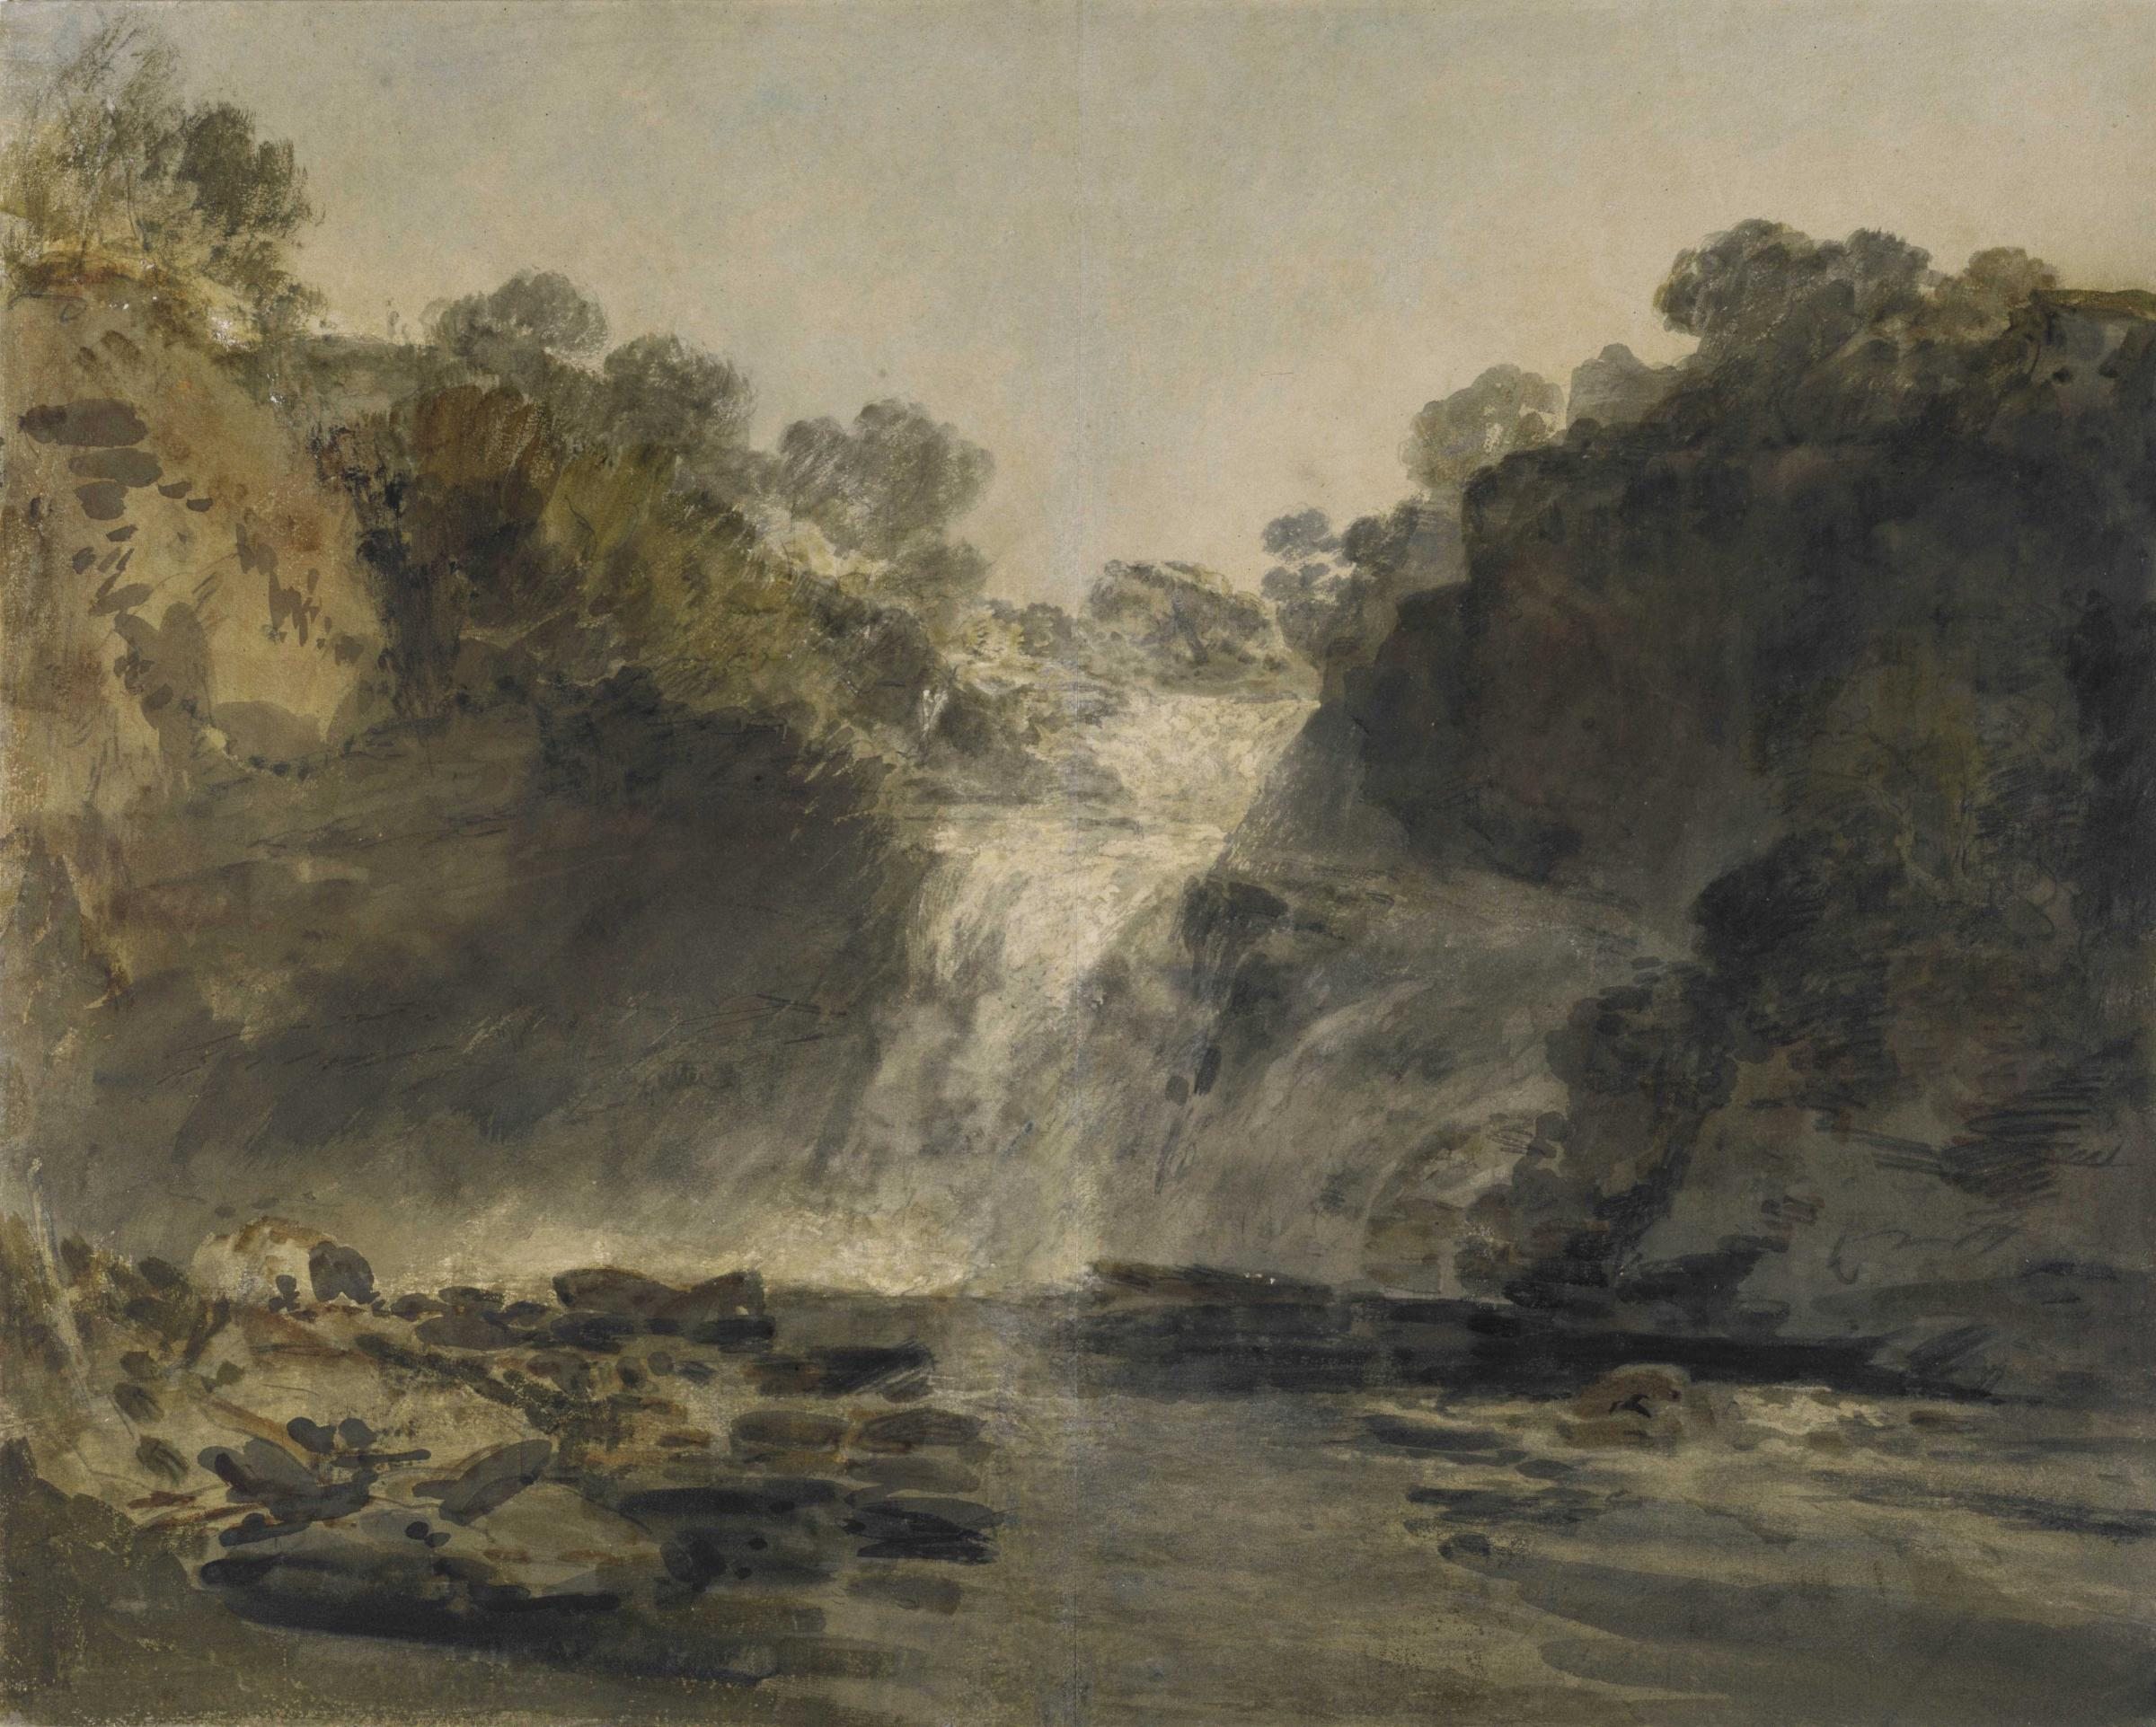 The Falls of Clyde, JMW Turner